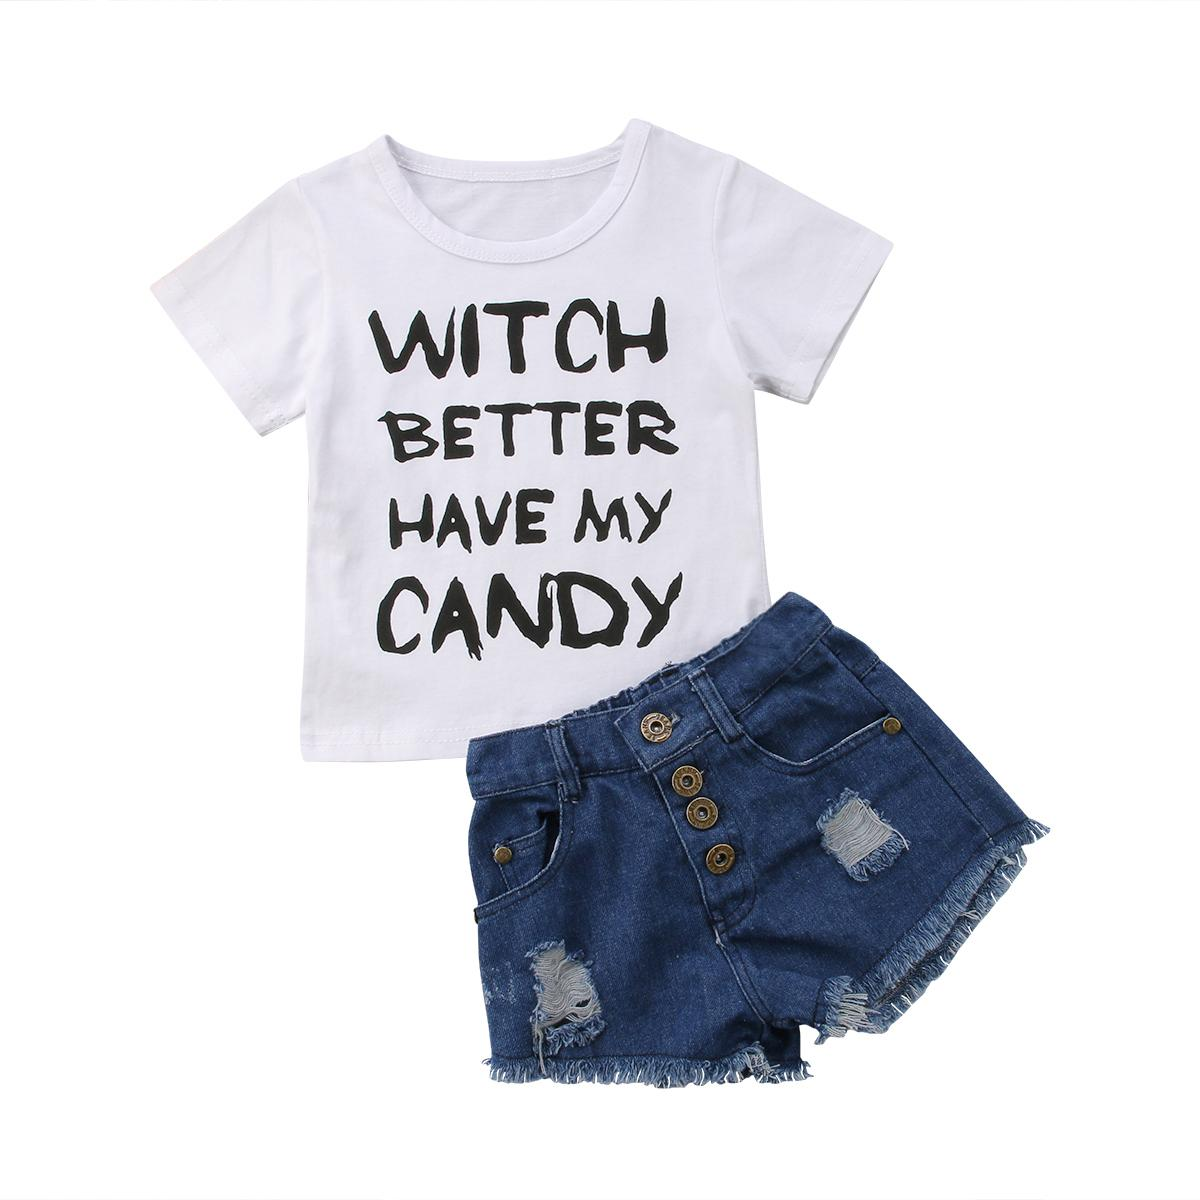 352ad2ccb3 2019 Kids Baby Girls Toddler Cotton Shortsleeve Letter T Shirt Tops Tee  Summer Clothes Shorts Jeans Casual Outfits Baby Girl 1 6T From Sightly